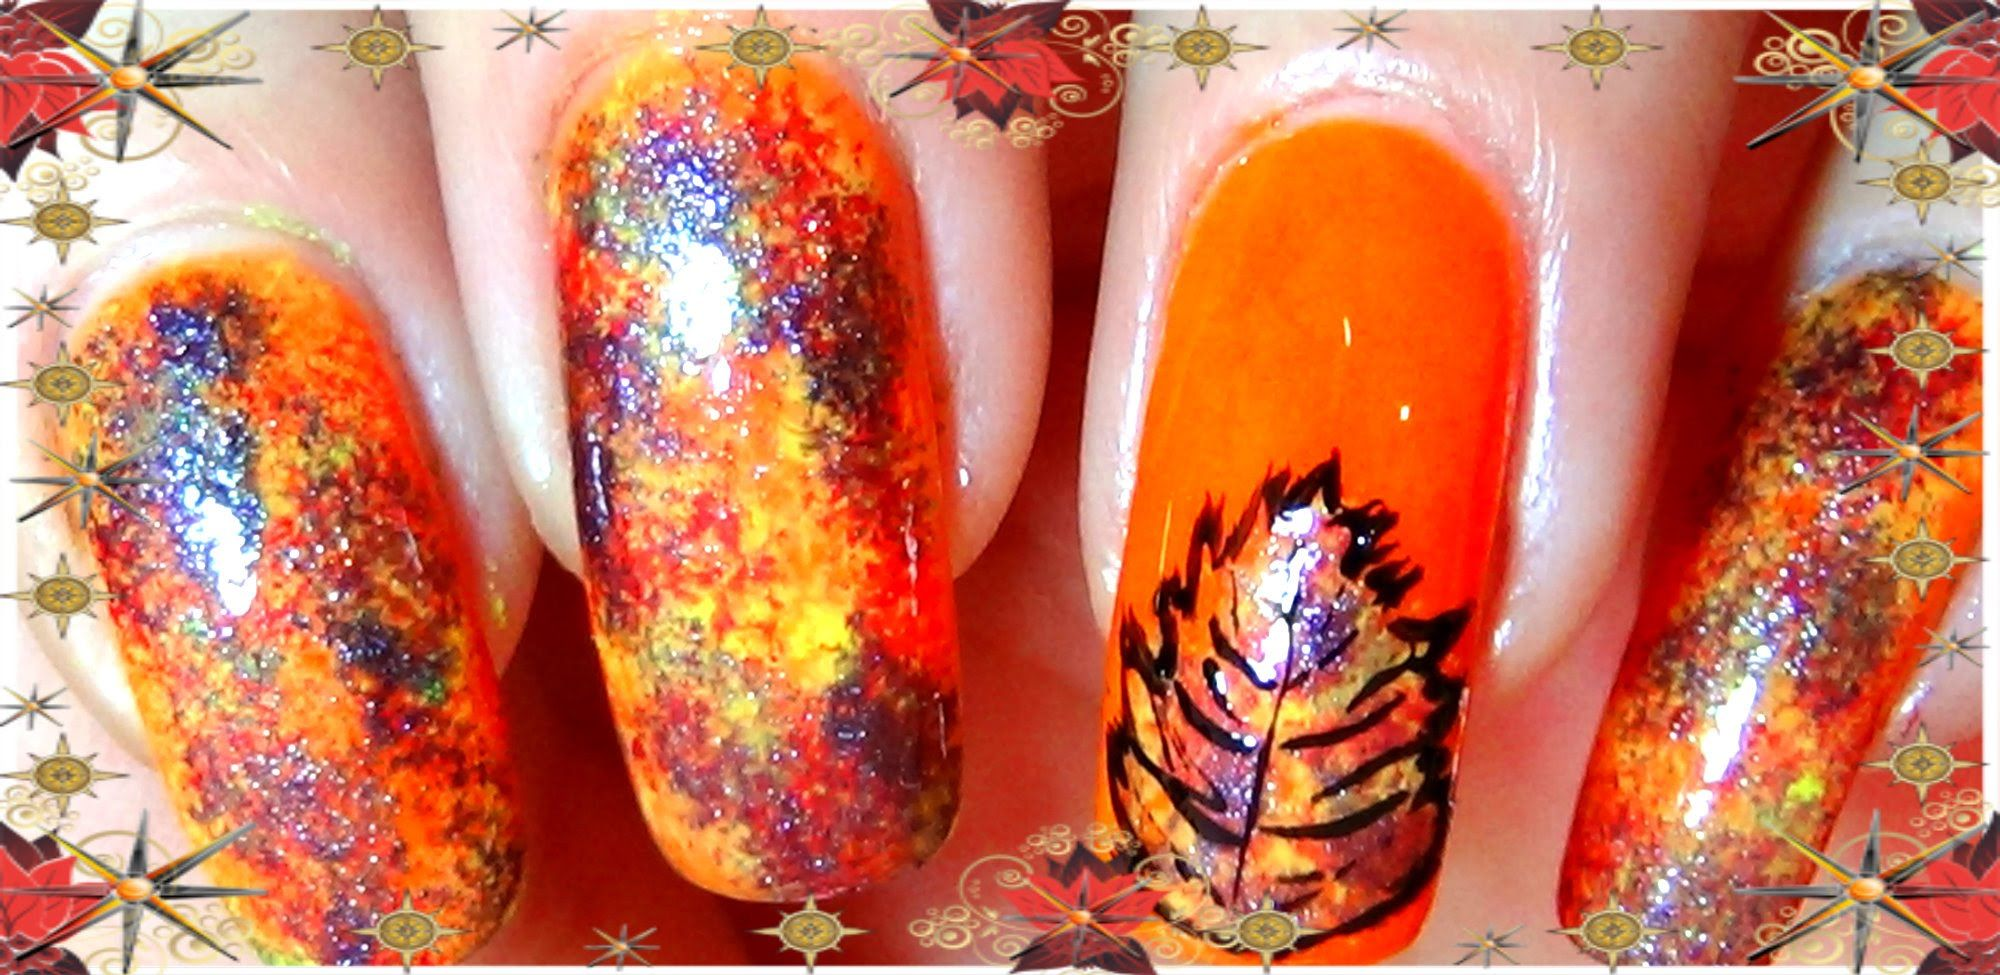 Cute Nail Tutorial - Fall Nail Art Designs - Ombre Nails with Sponge ...